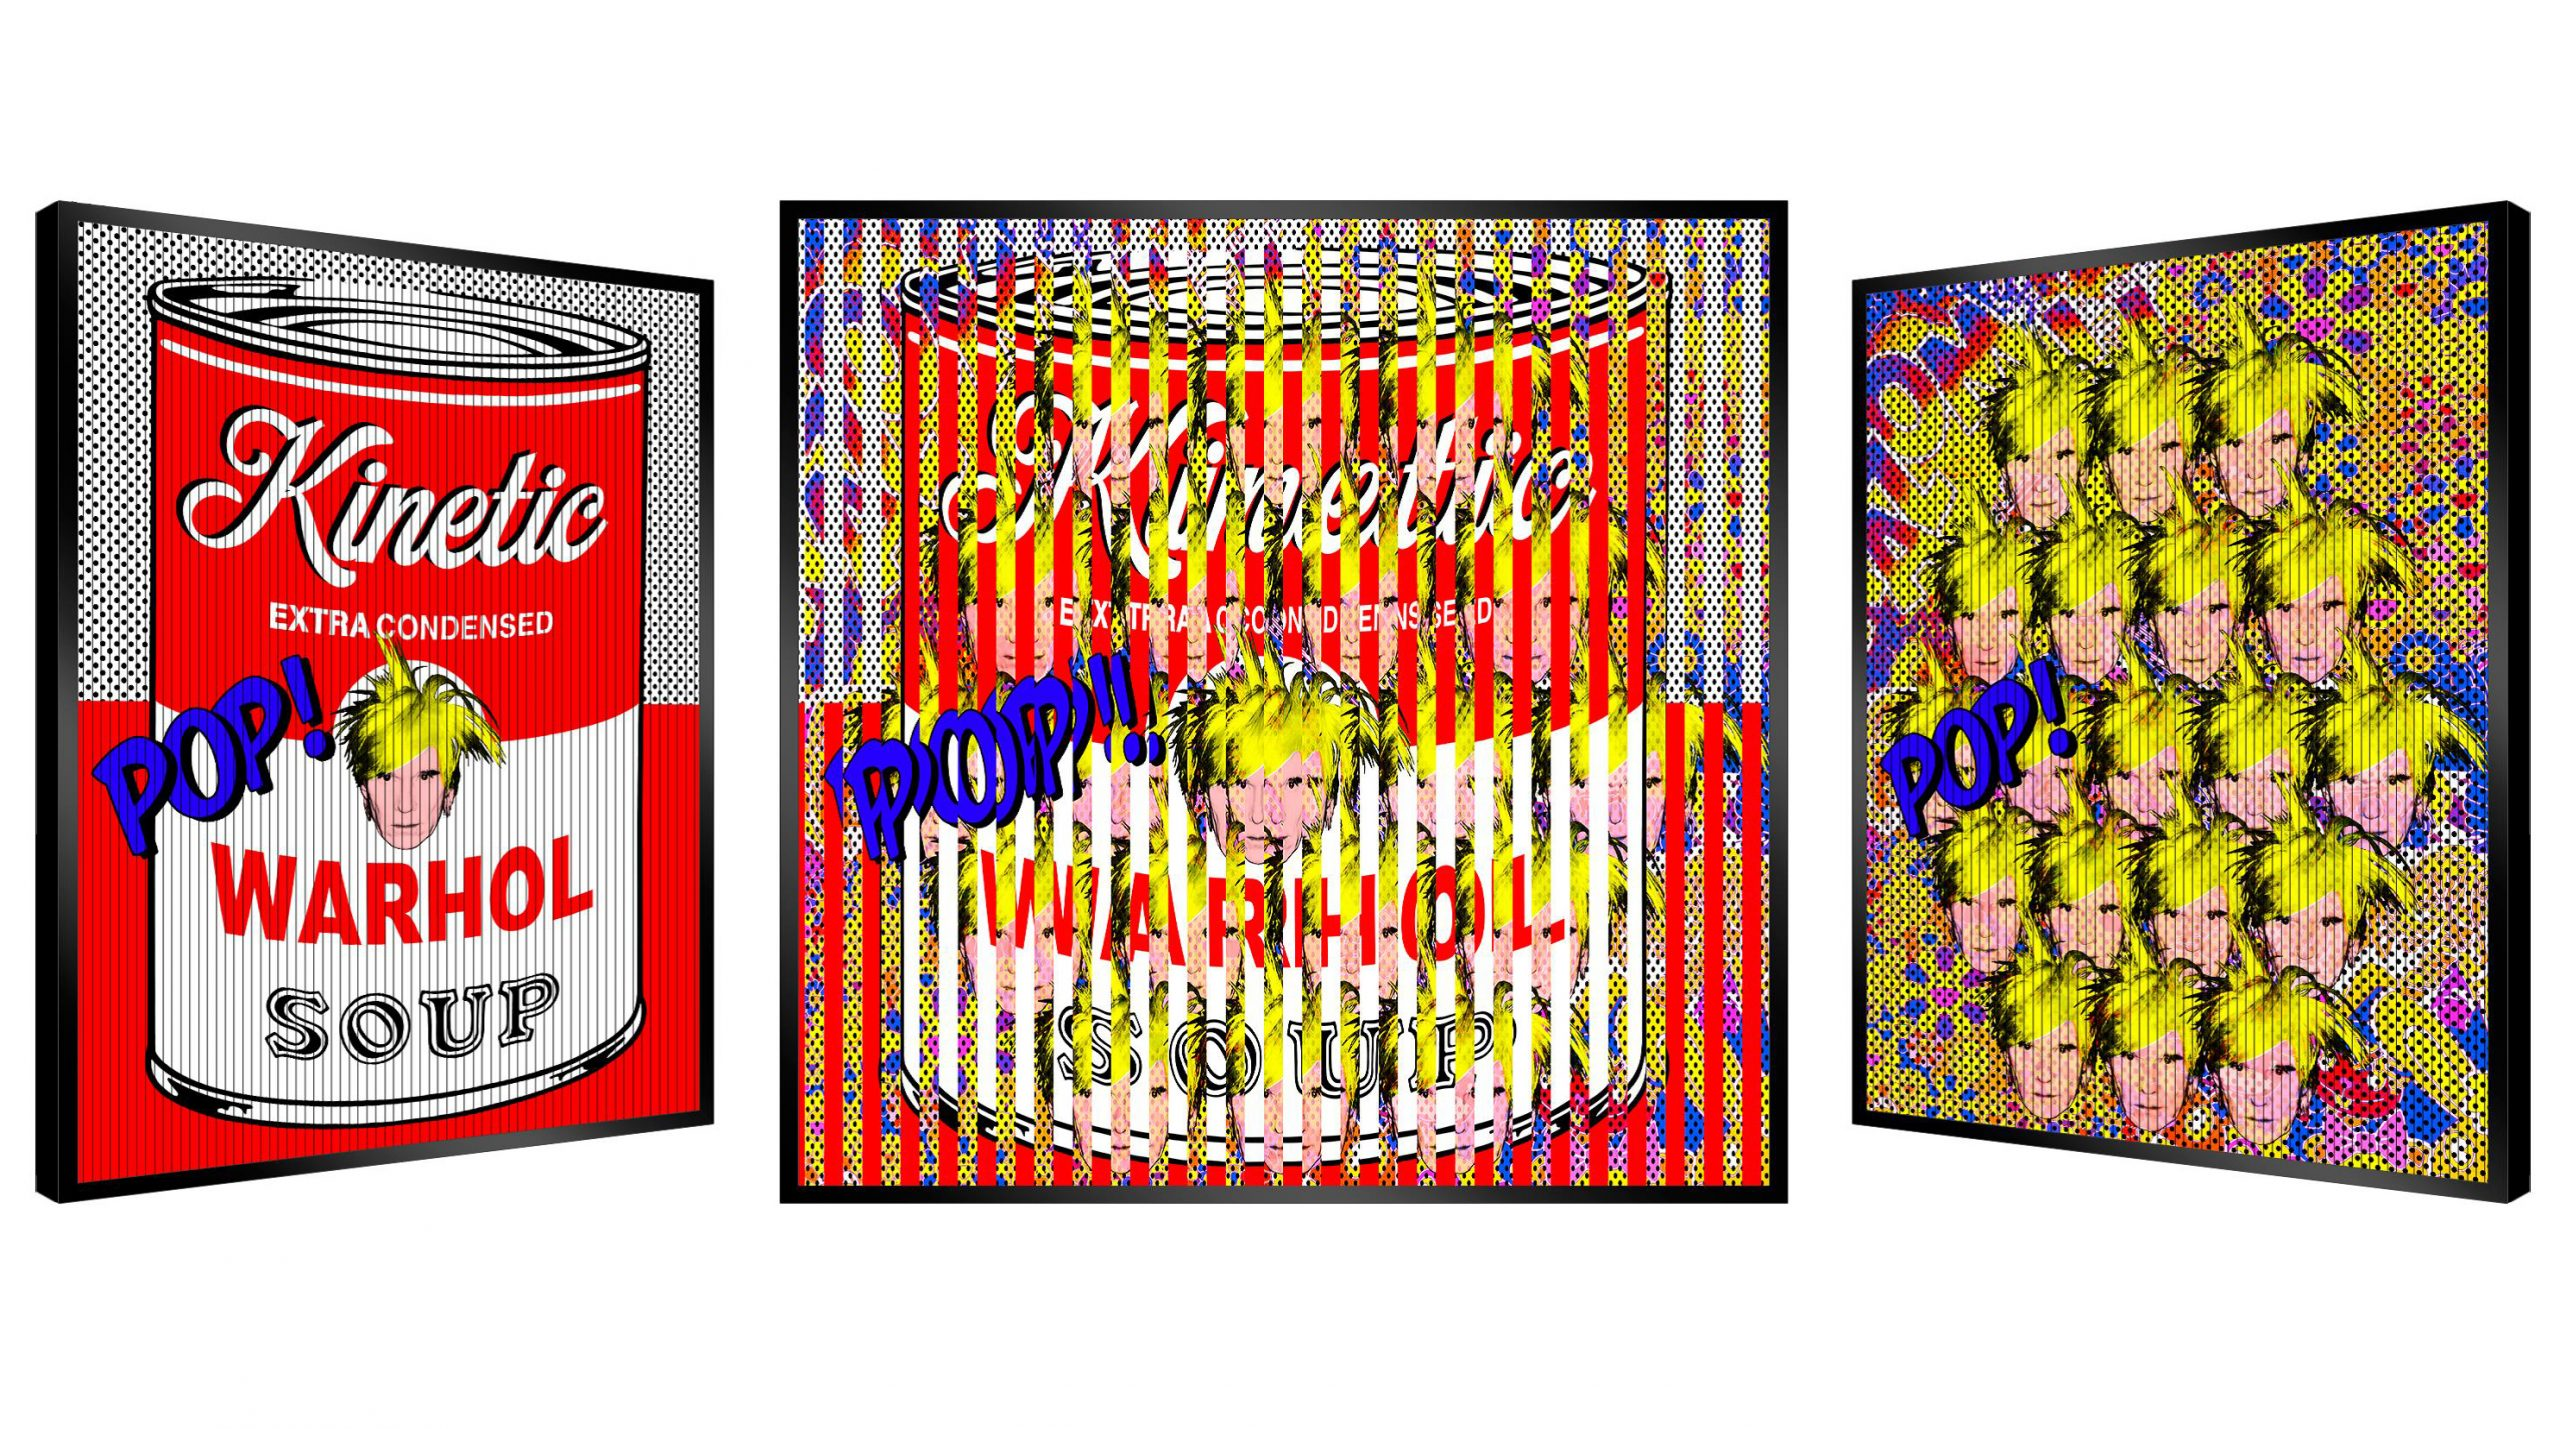 Patrick Rubinstein - Warhol Pop Soup , 2624-004-050